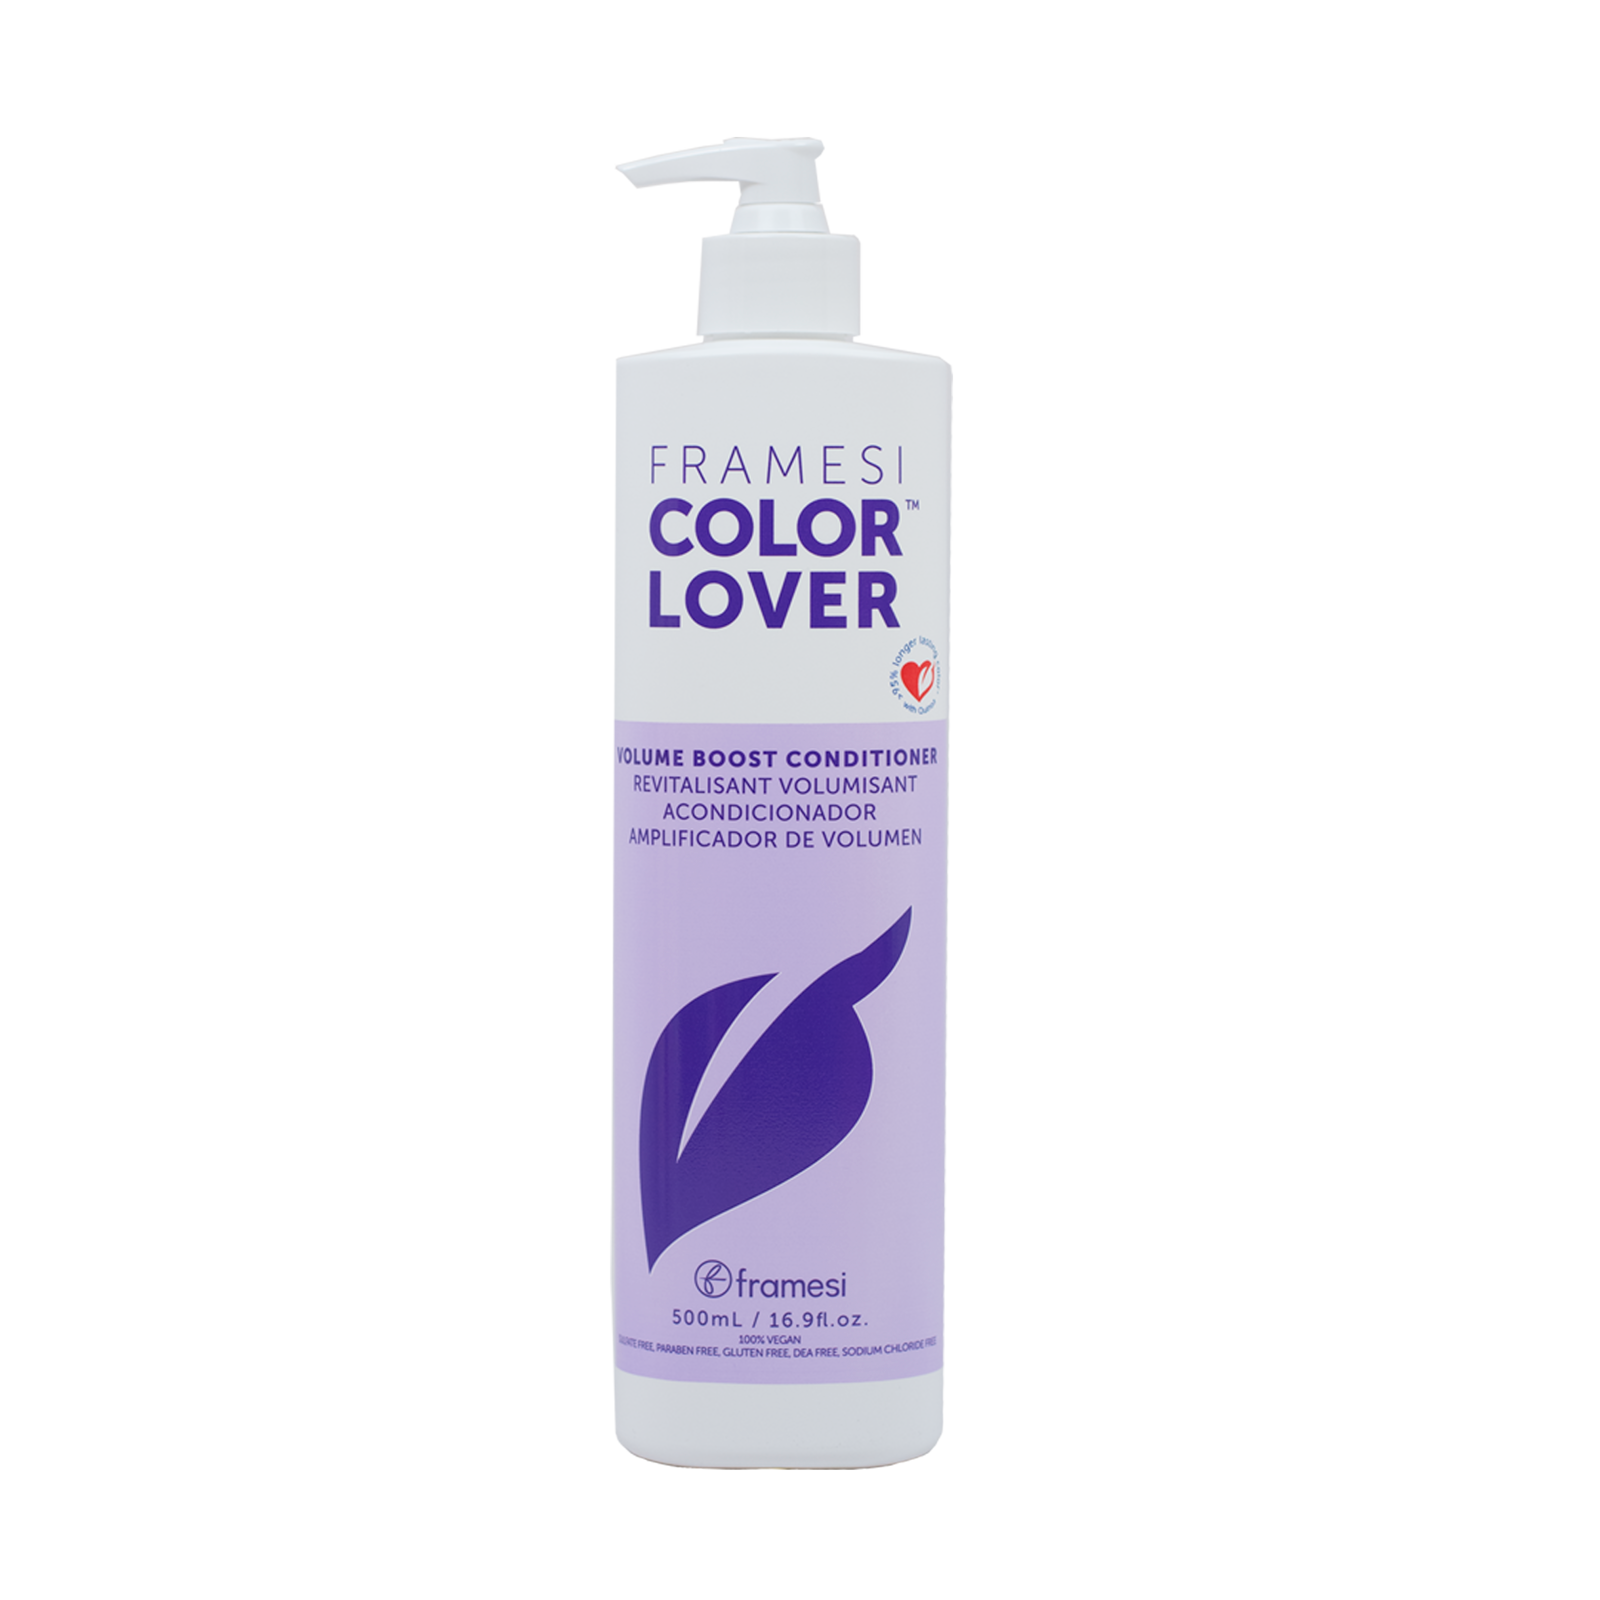 Volume Boost Conditioner